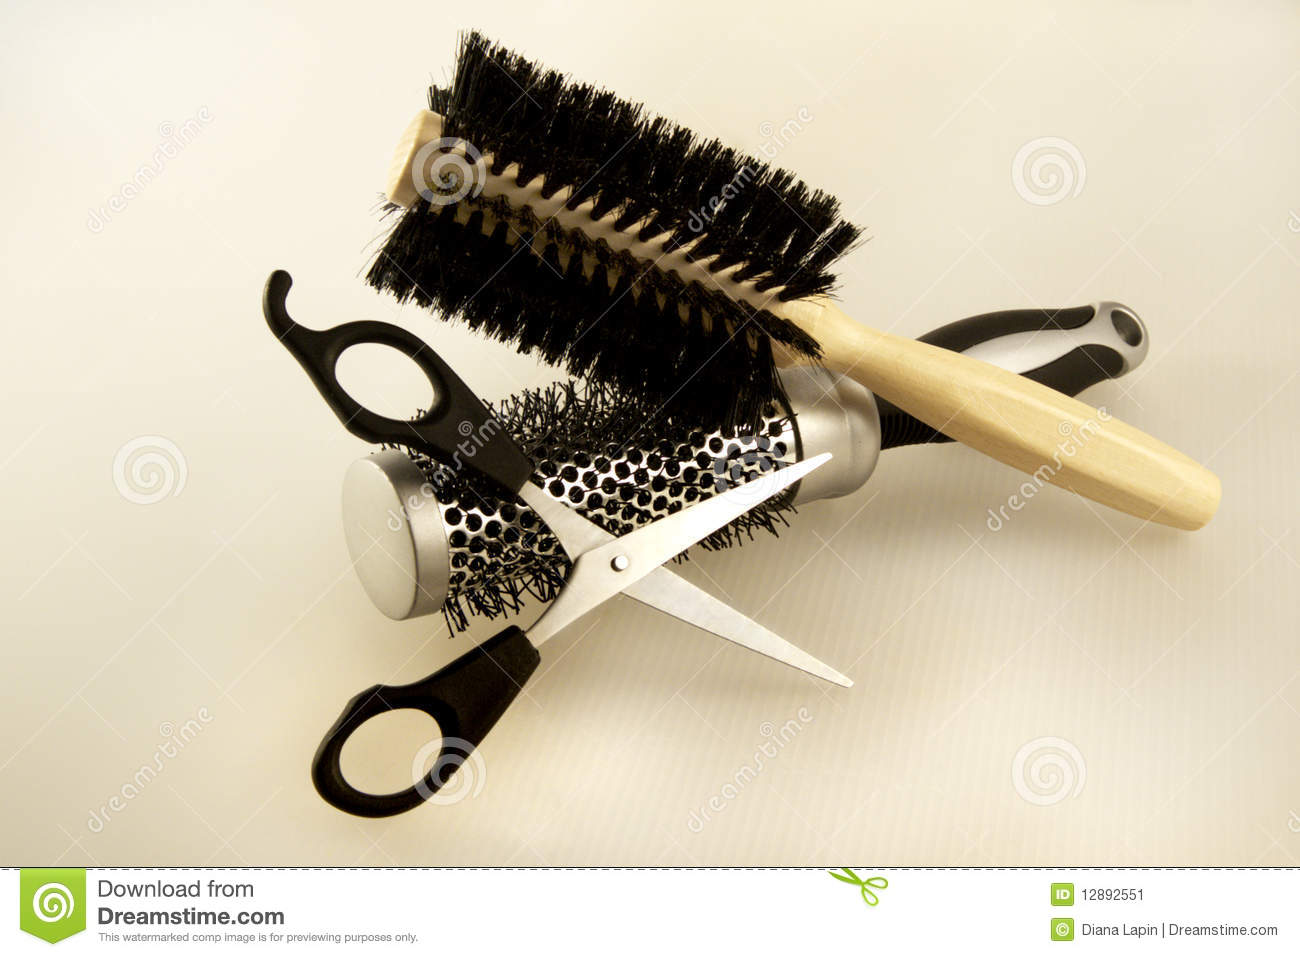 Hairdresser Accessories Stock Image - Image: 12892551